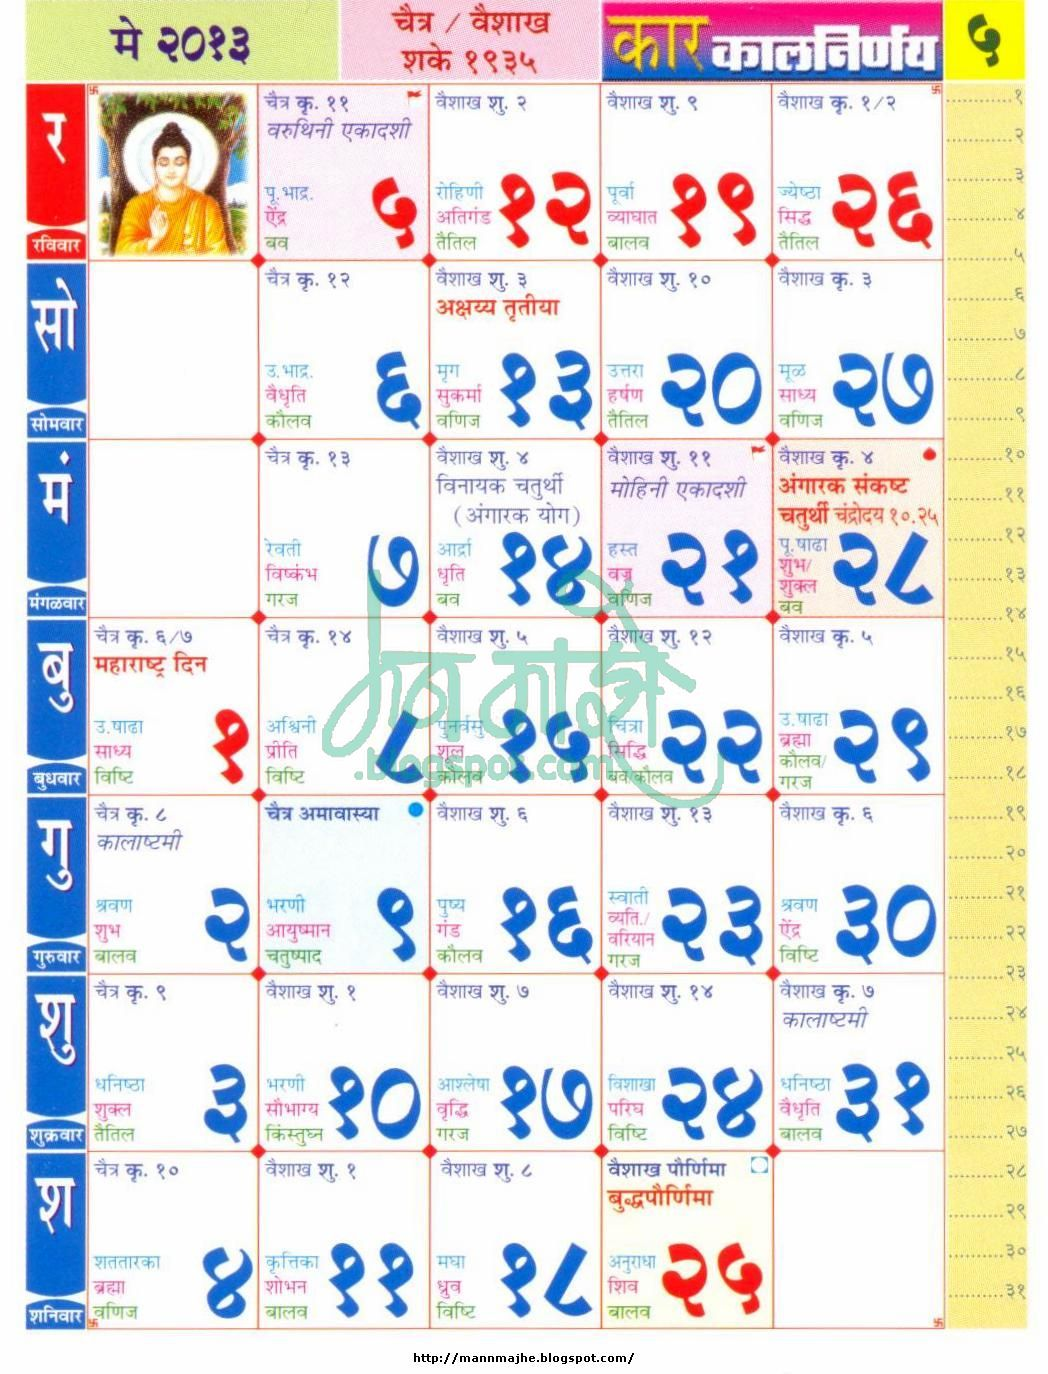 New Year Calendar Kalnirnay : Free monthly calendar templates download blank page